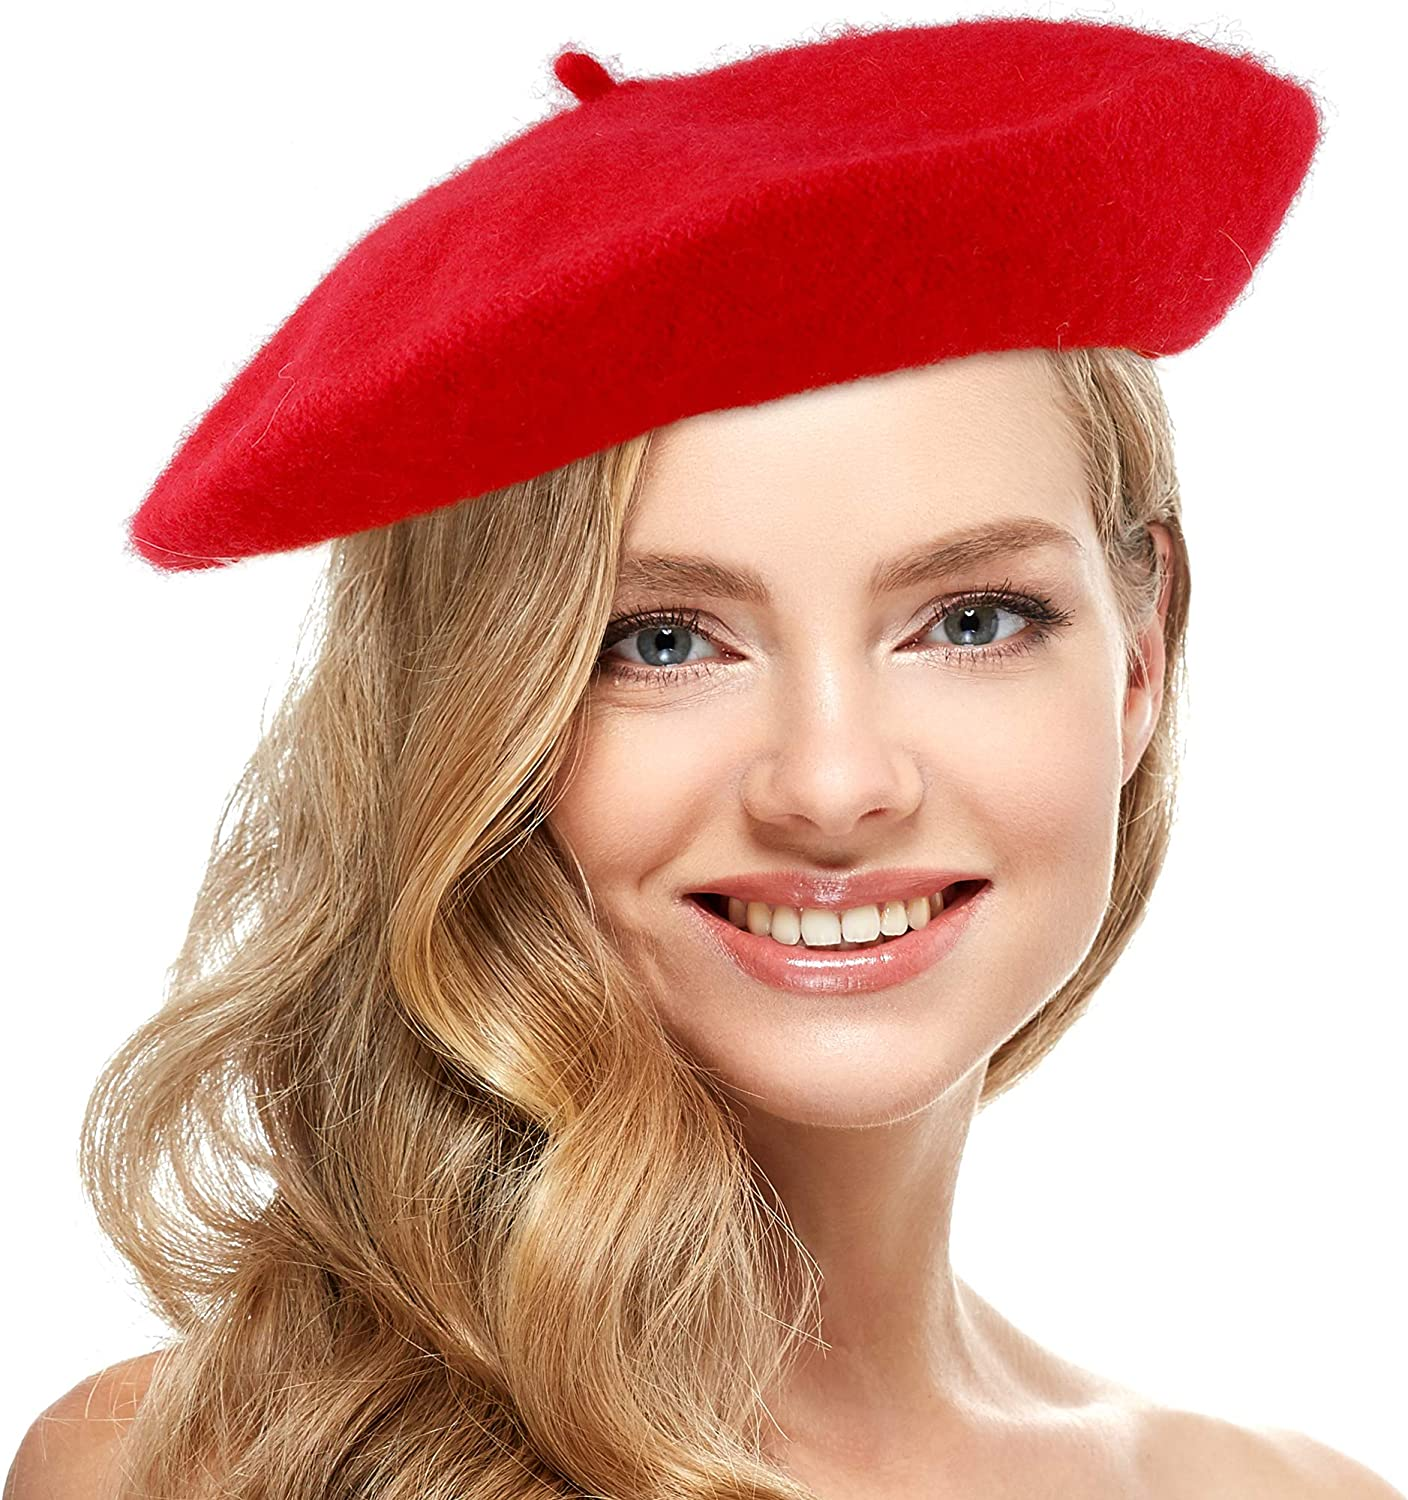 Skeleteen Red French Style Beret - Women's Classic Beret Hat for Casual Use - 1 Piece